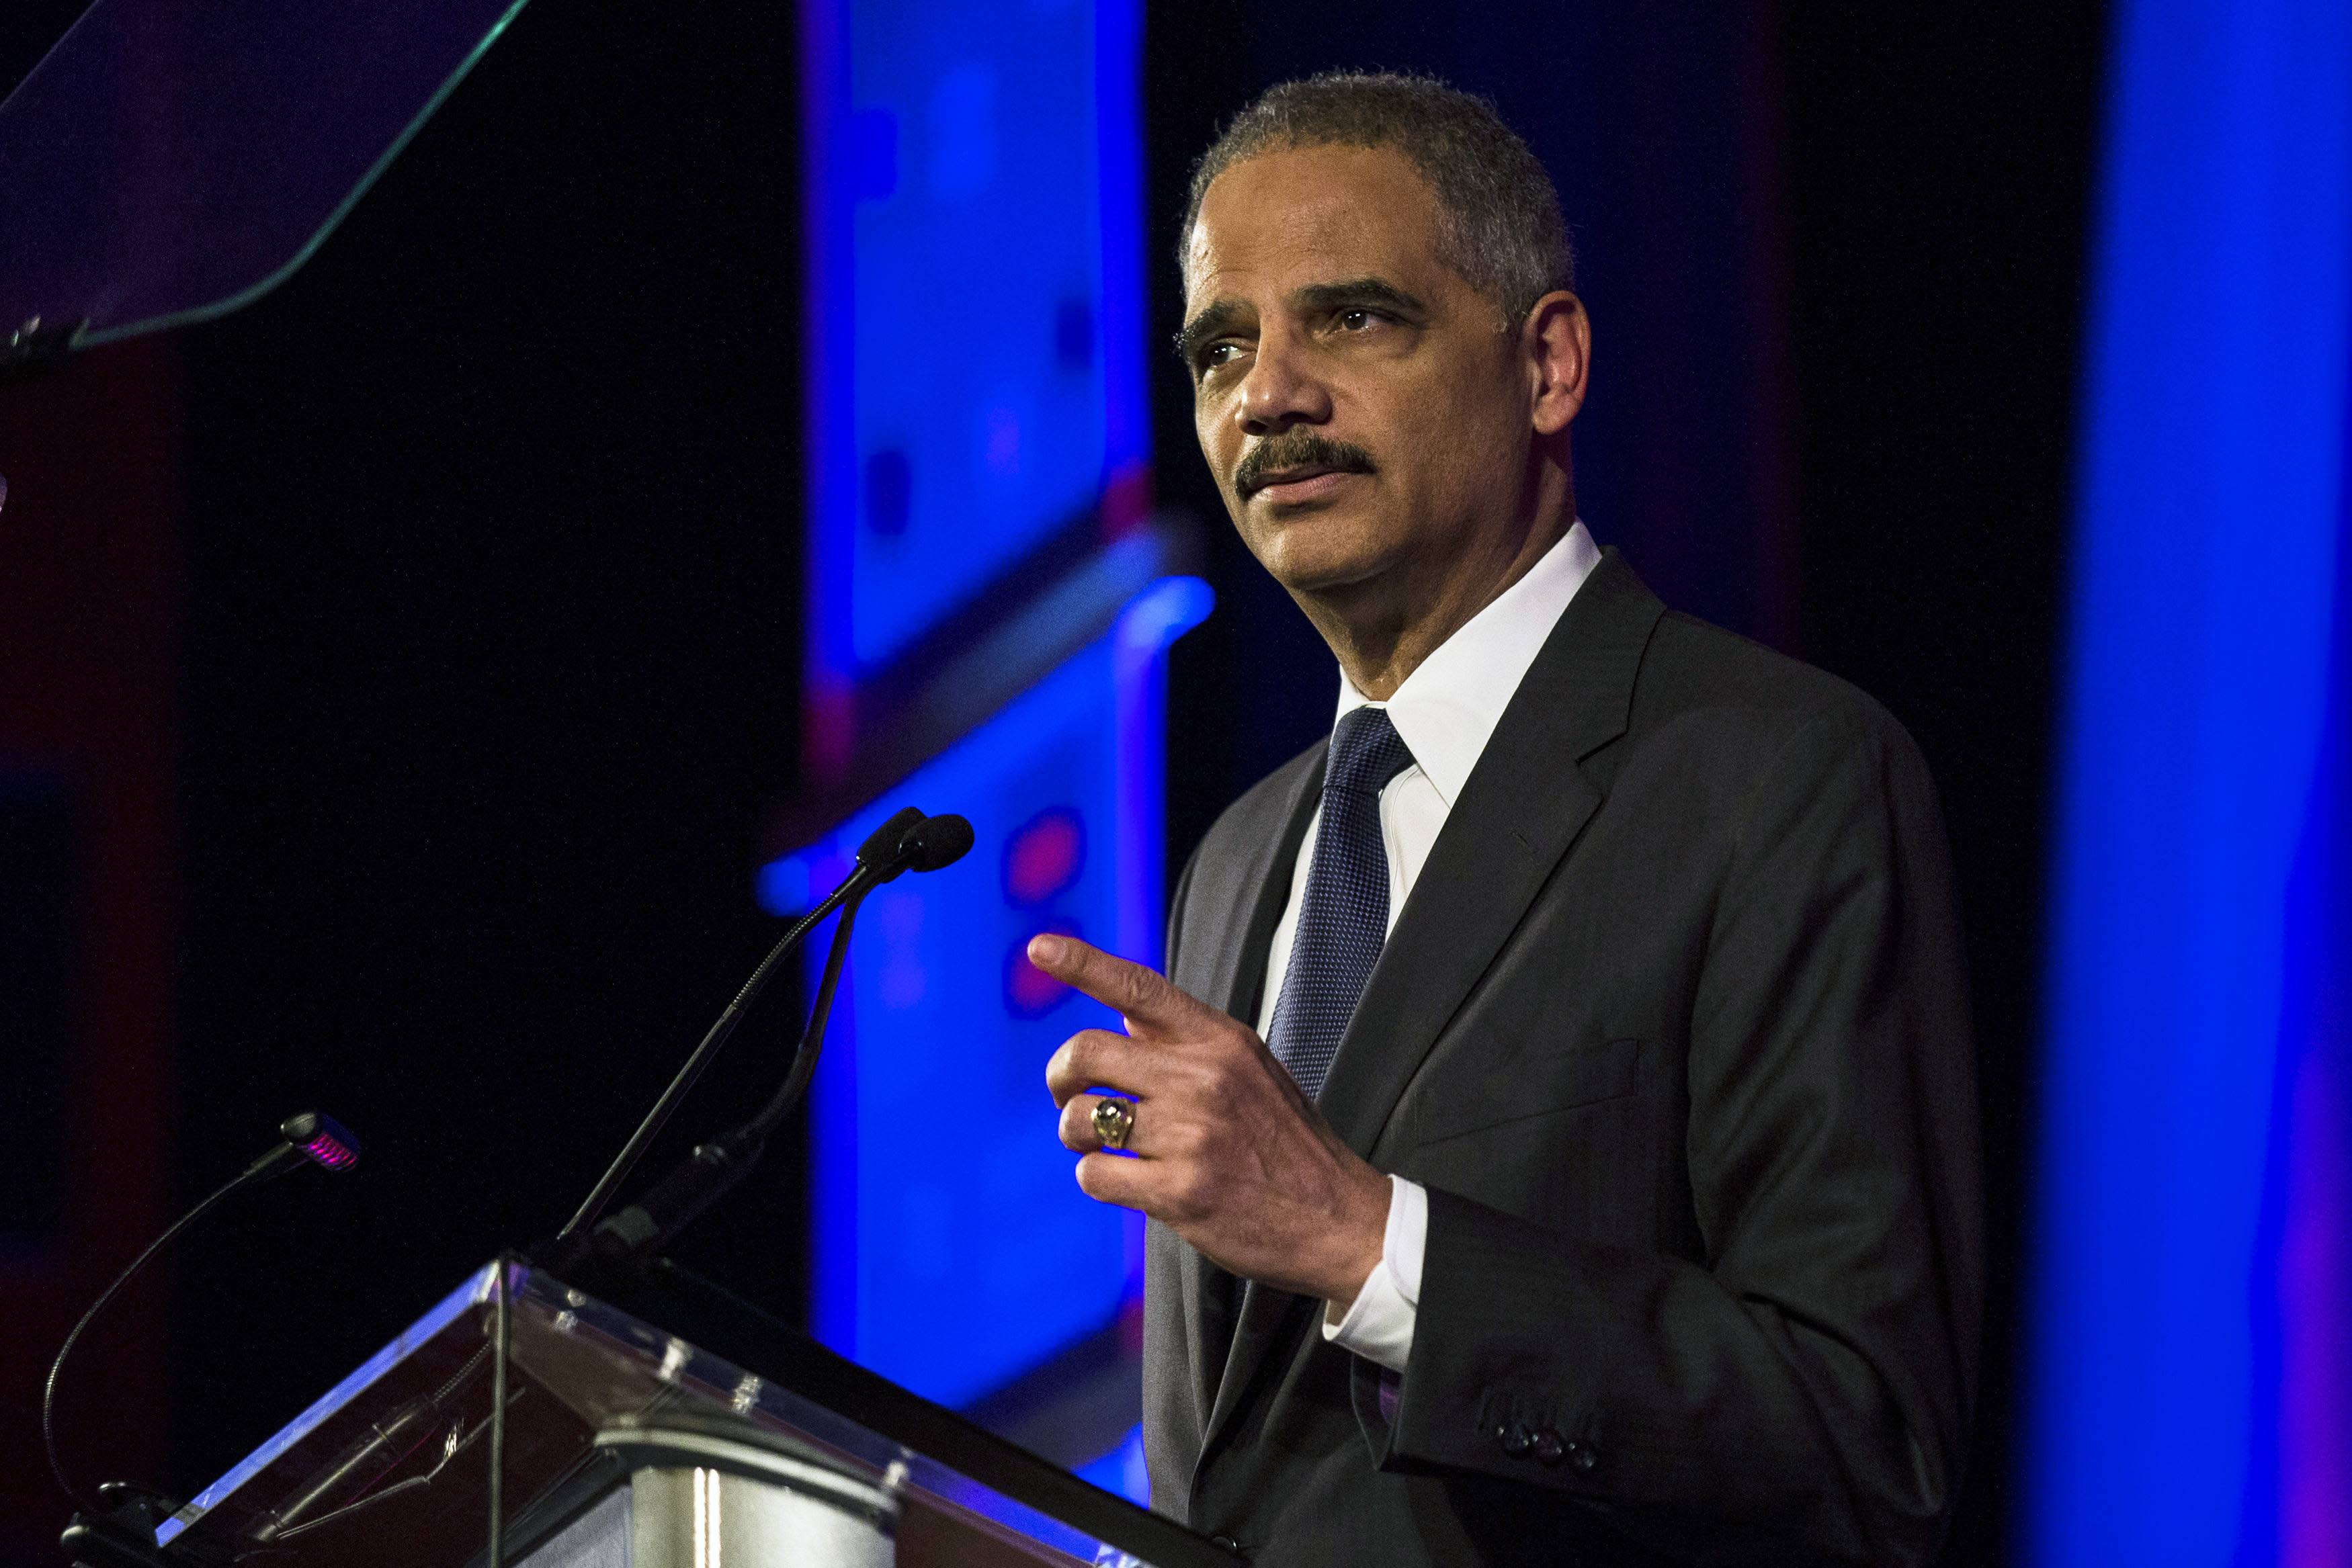 United States Attorney General Eric Holder speaks during the Human Rights Campaign's 13th annual Greater New York Gala in the Manhattan borough of New York, February 8, 2014. Holder plans widespread changes within the U.S. Justice Department to benefit same-sex married couples, such as recognizing a legal right for them not to testify against each other in civil and criminal cases. REUTERS/Keith Bedford (UNITED STATES - Tags: POLITICS CRIME LAW)